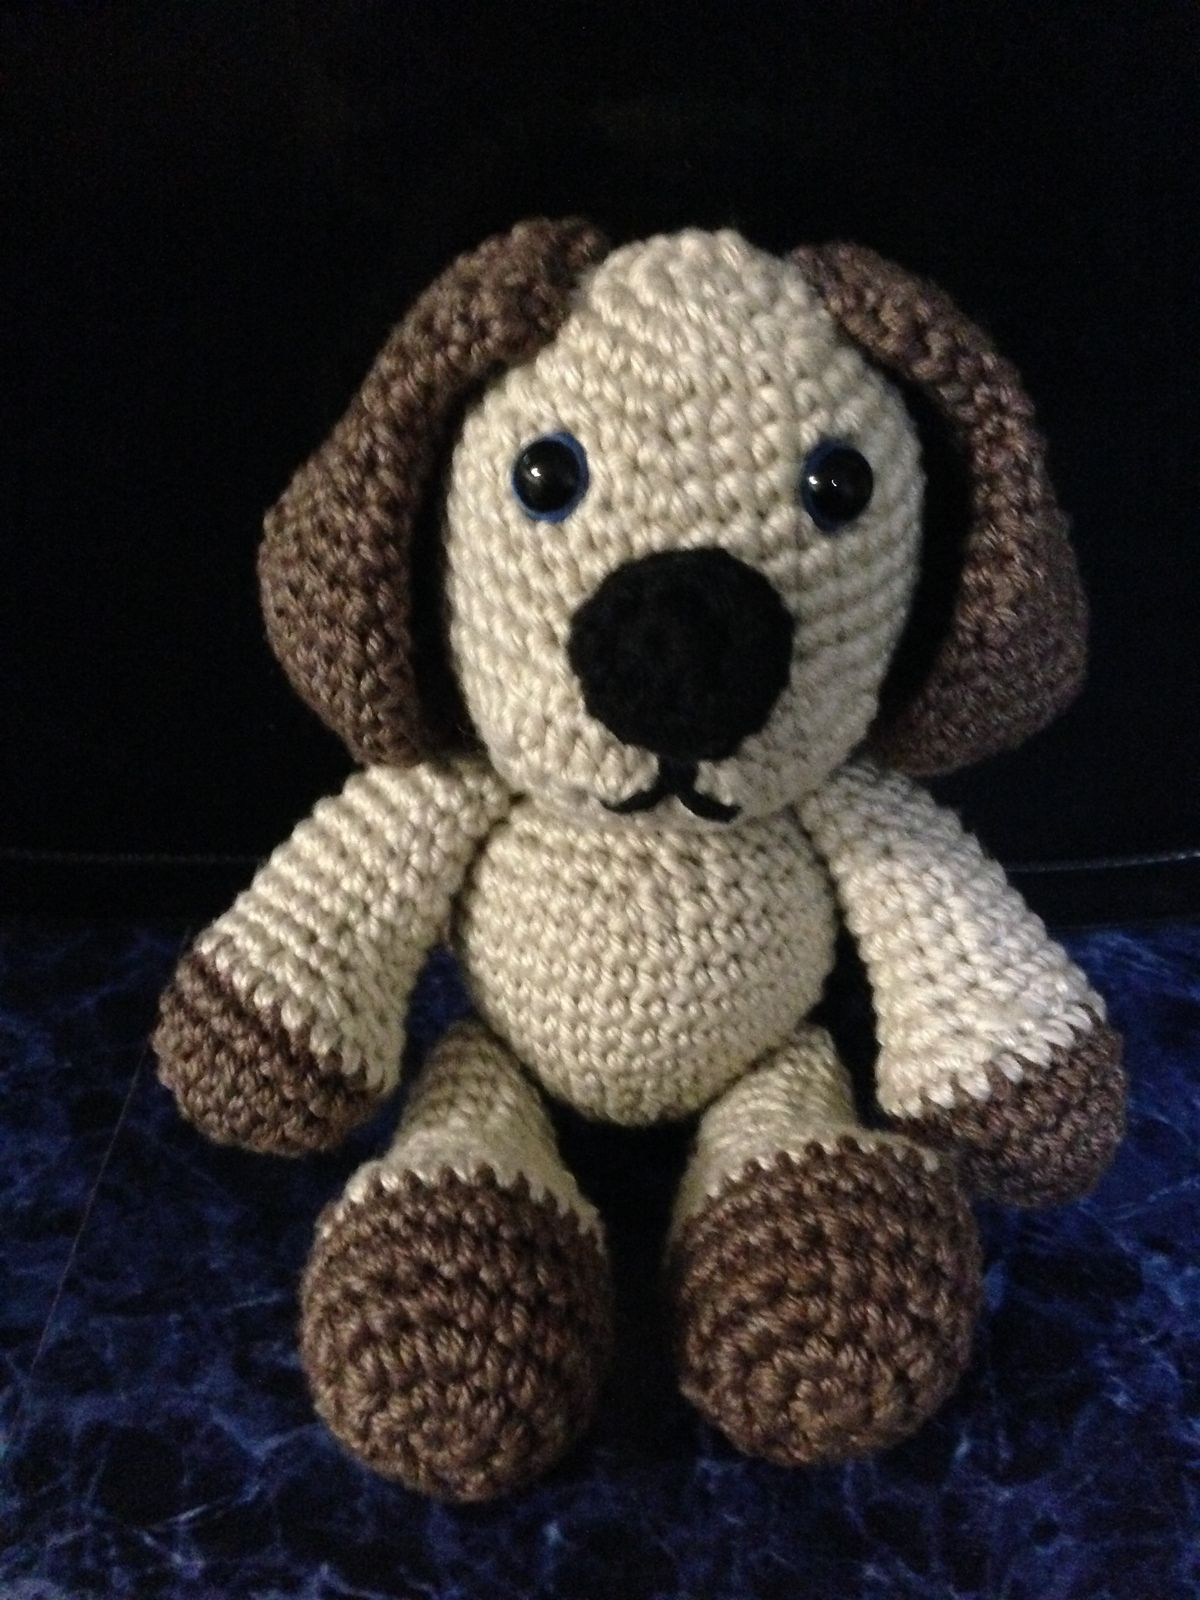 Puppy Emmett Amigurumi pattern by KTZ crochet compositions